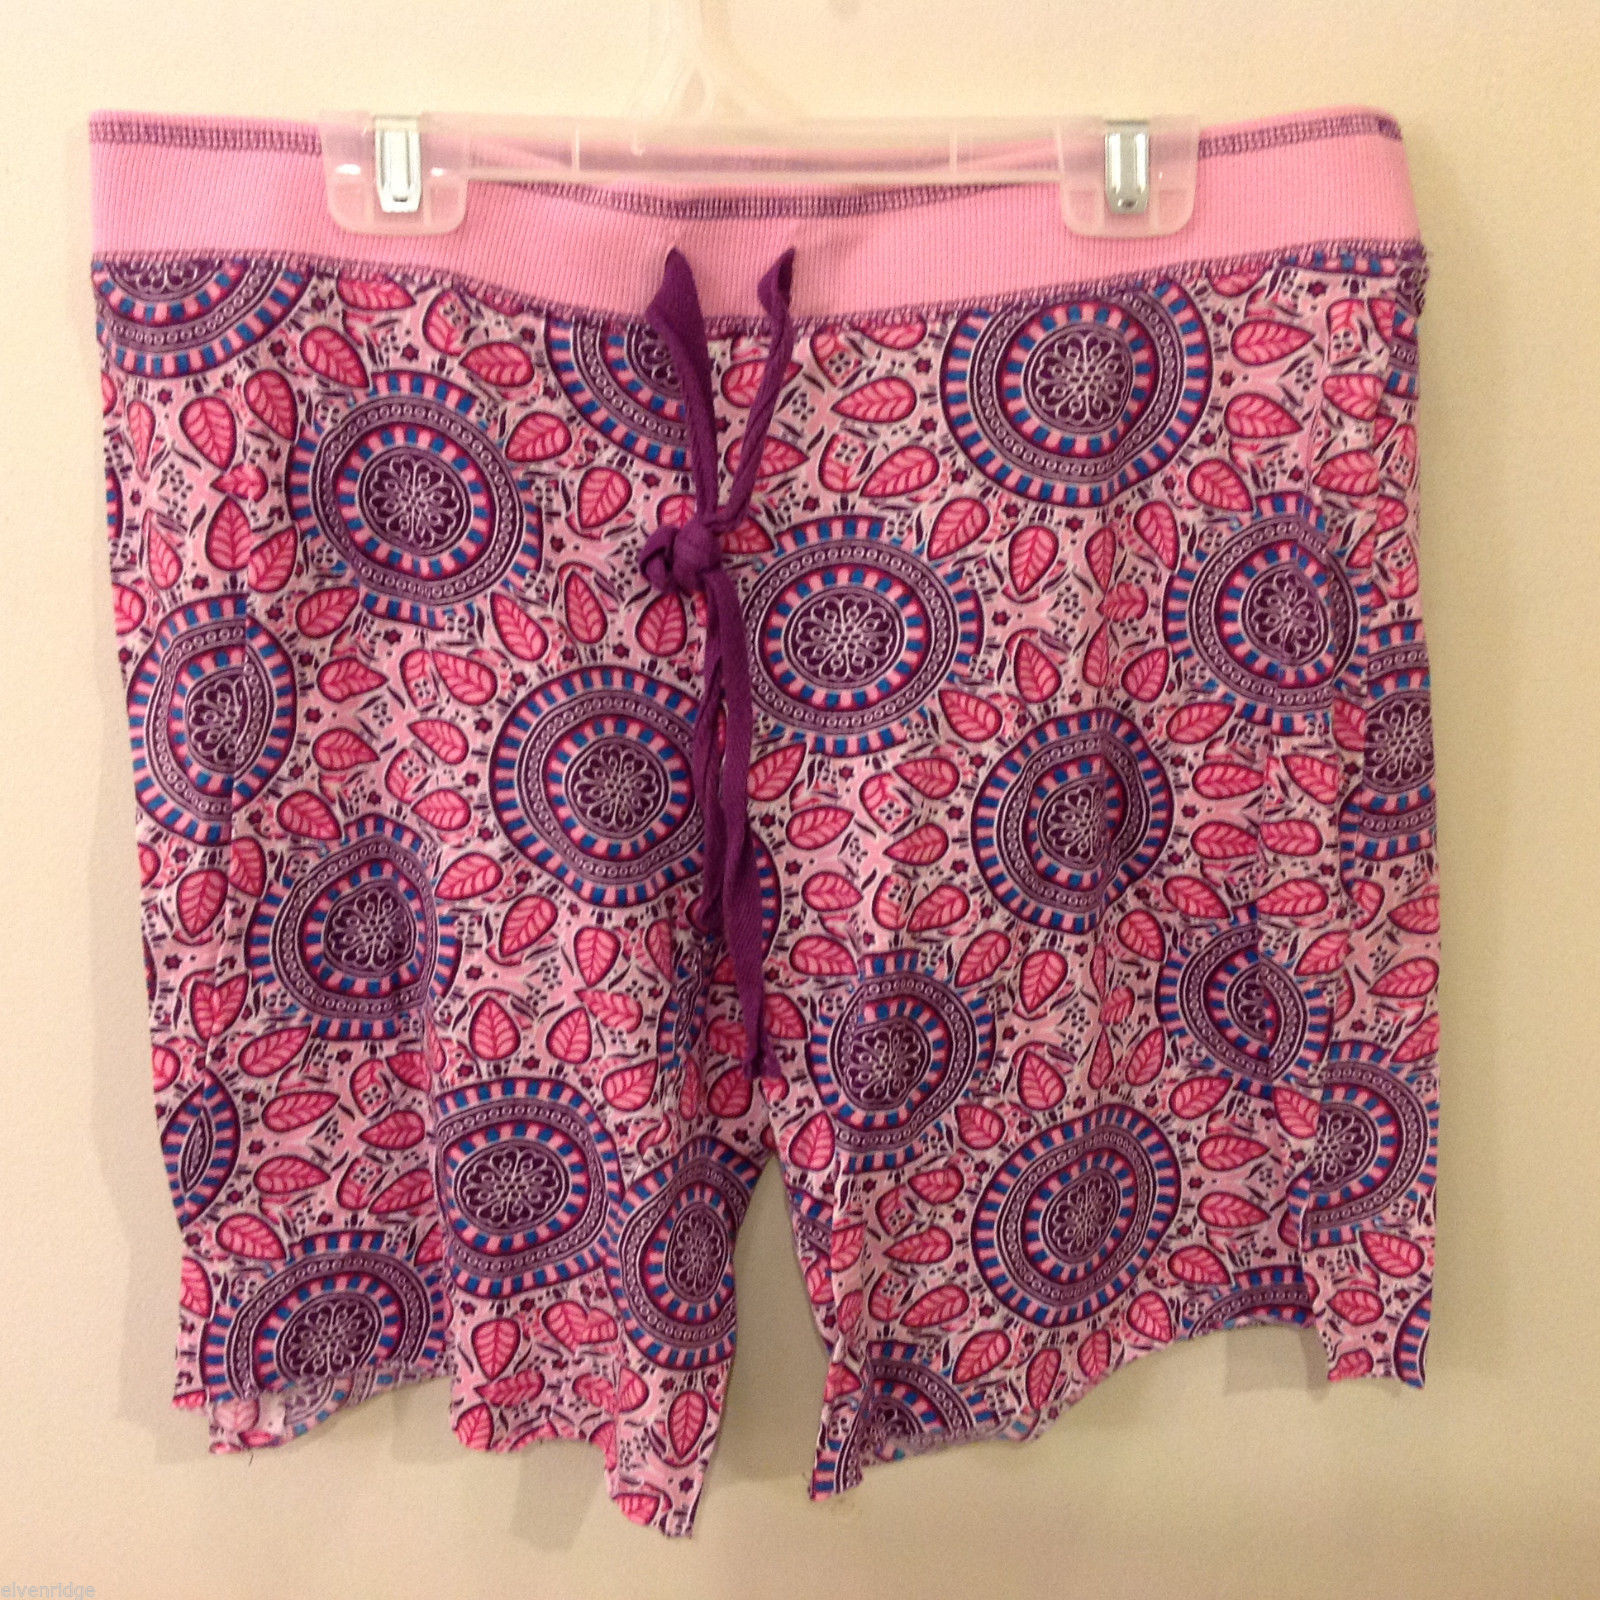 Cynthia Rowley Women's Size M Drawstring Shorts Pink Purple Blue Medallion Print